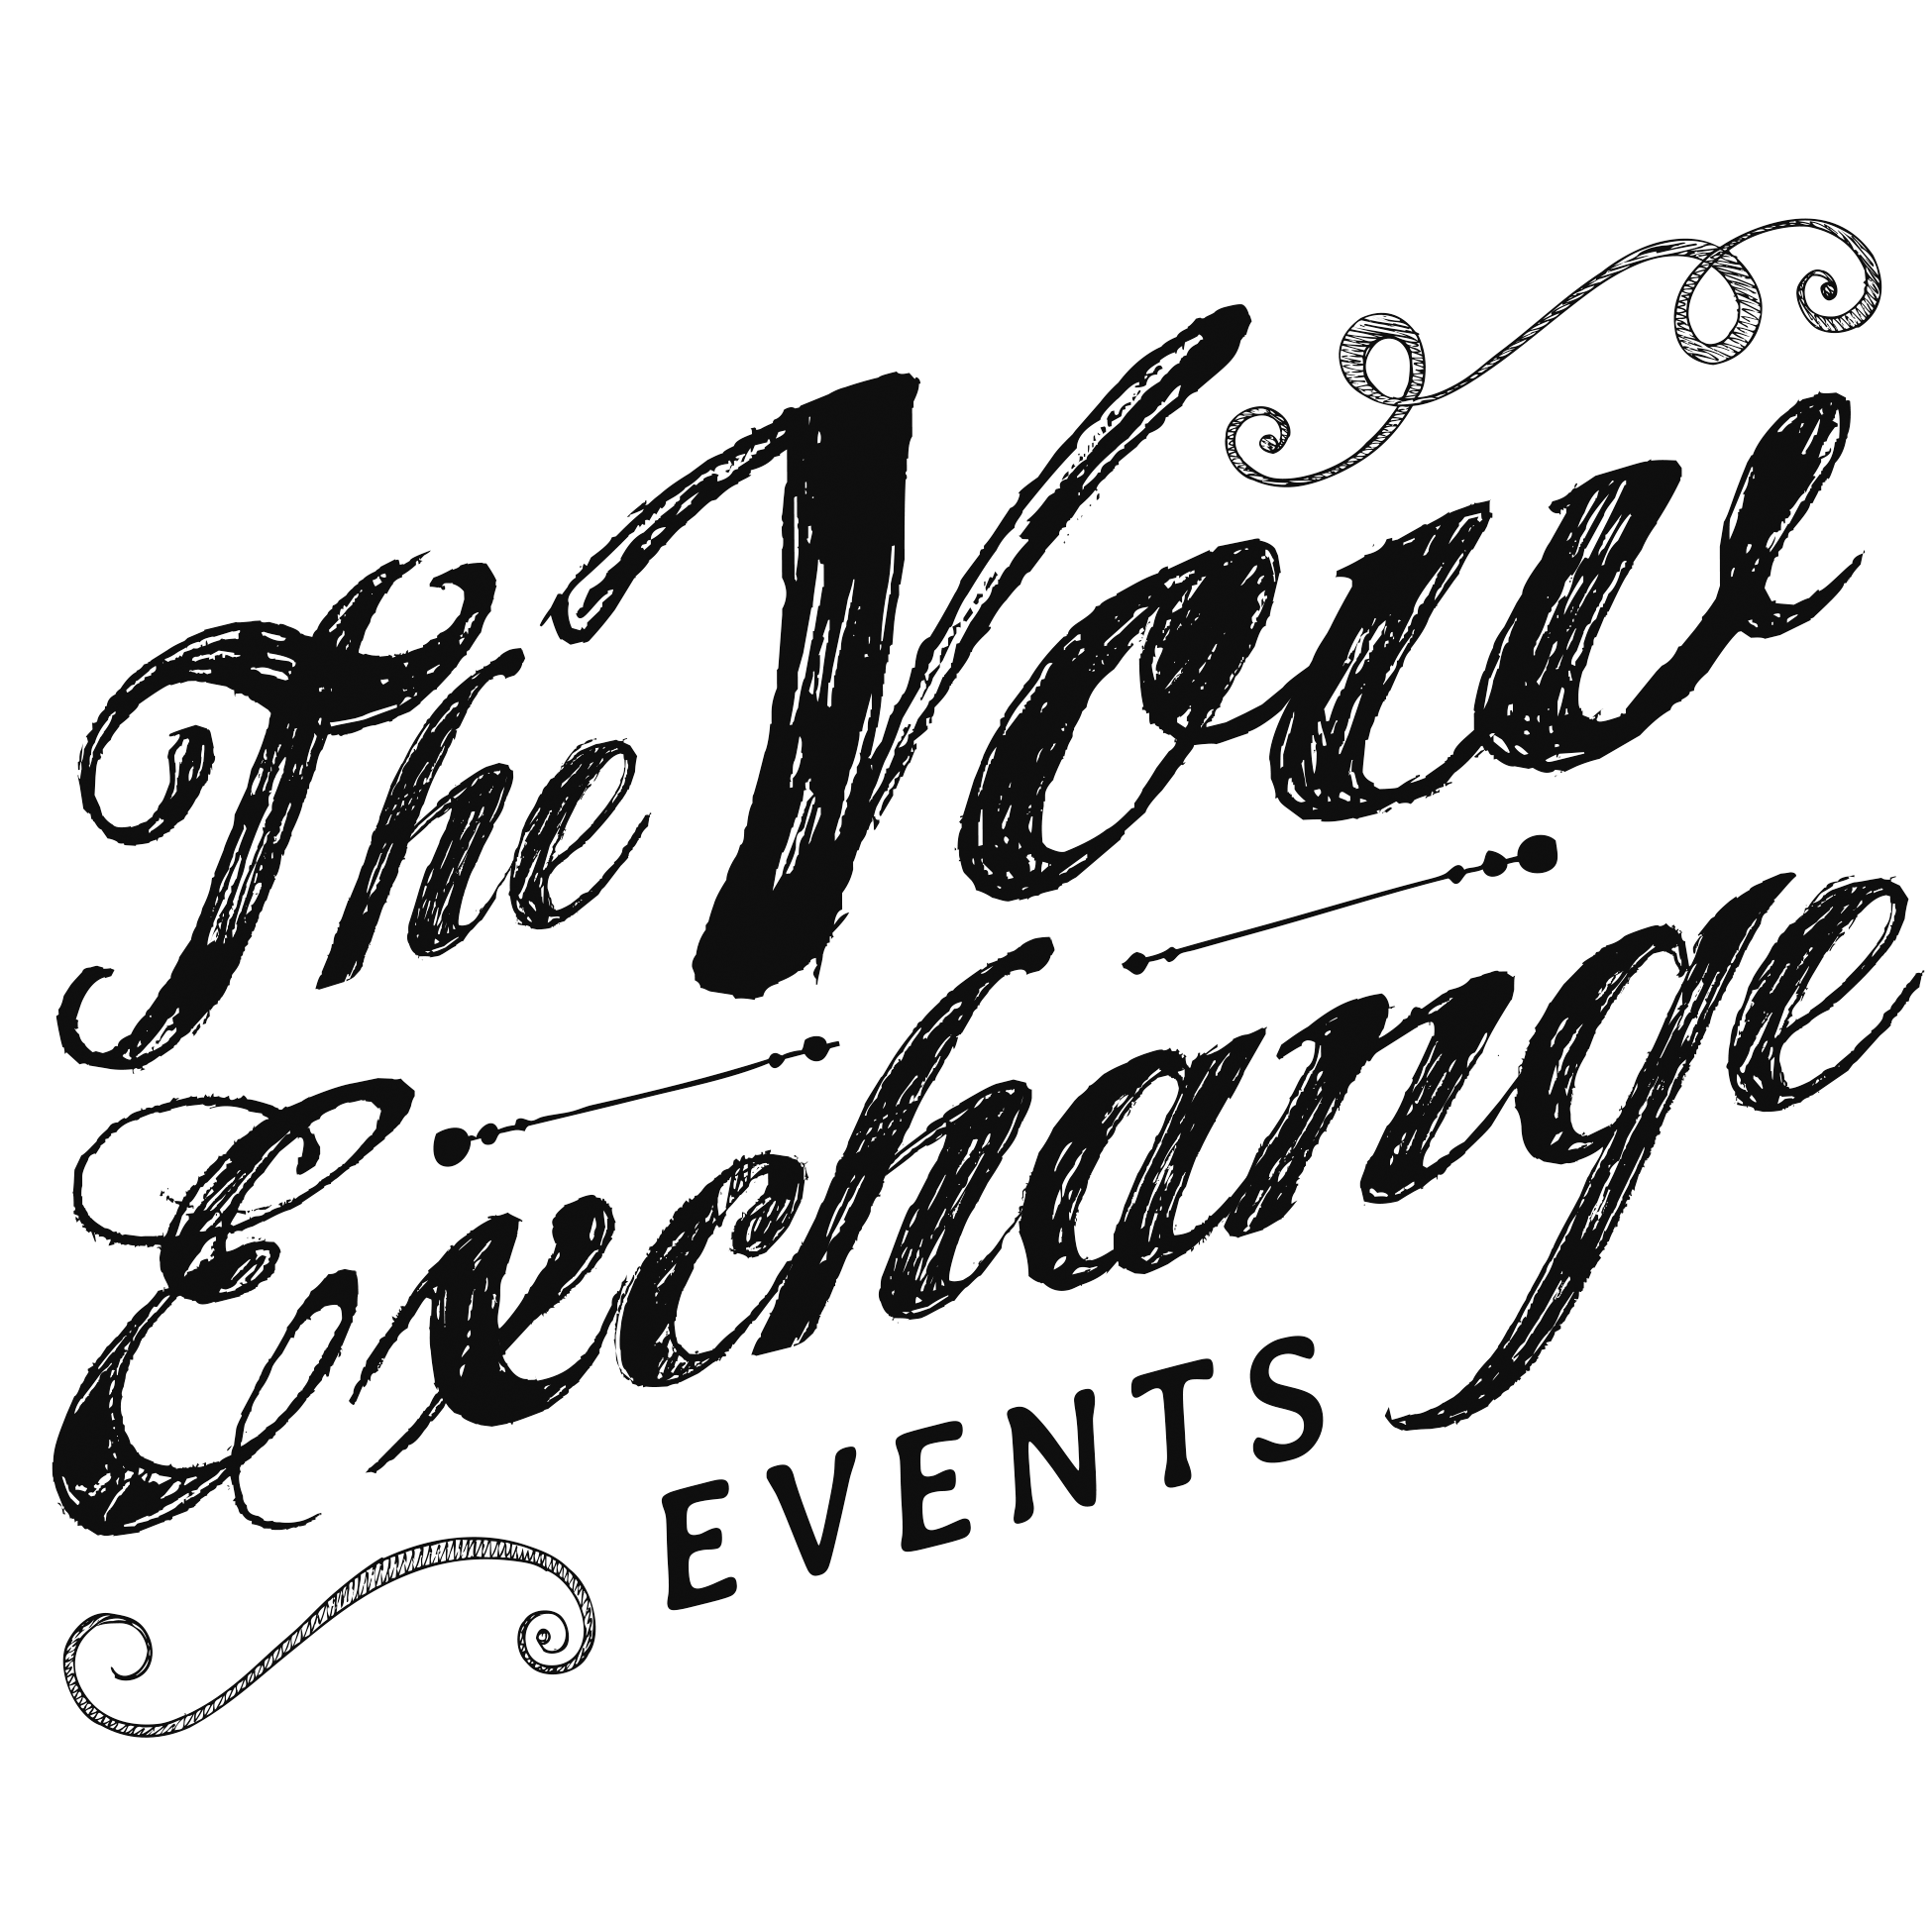 TVX-EVENTS-BLK.png